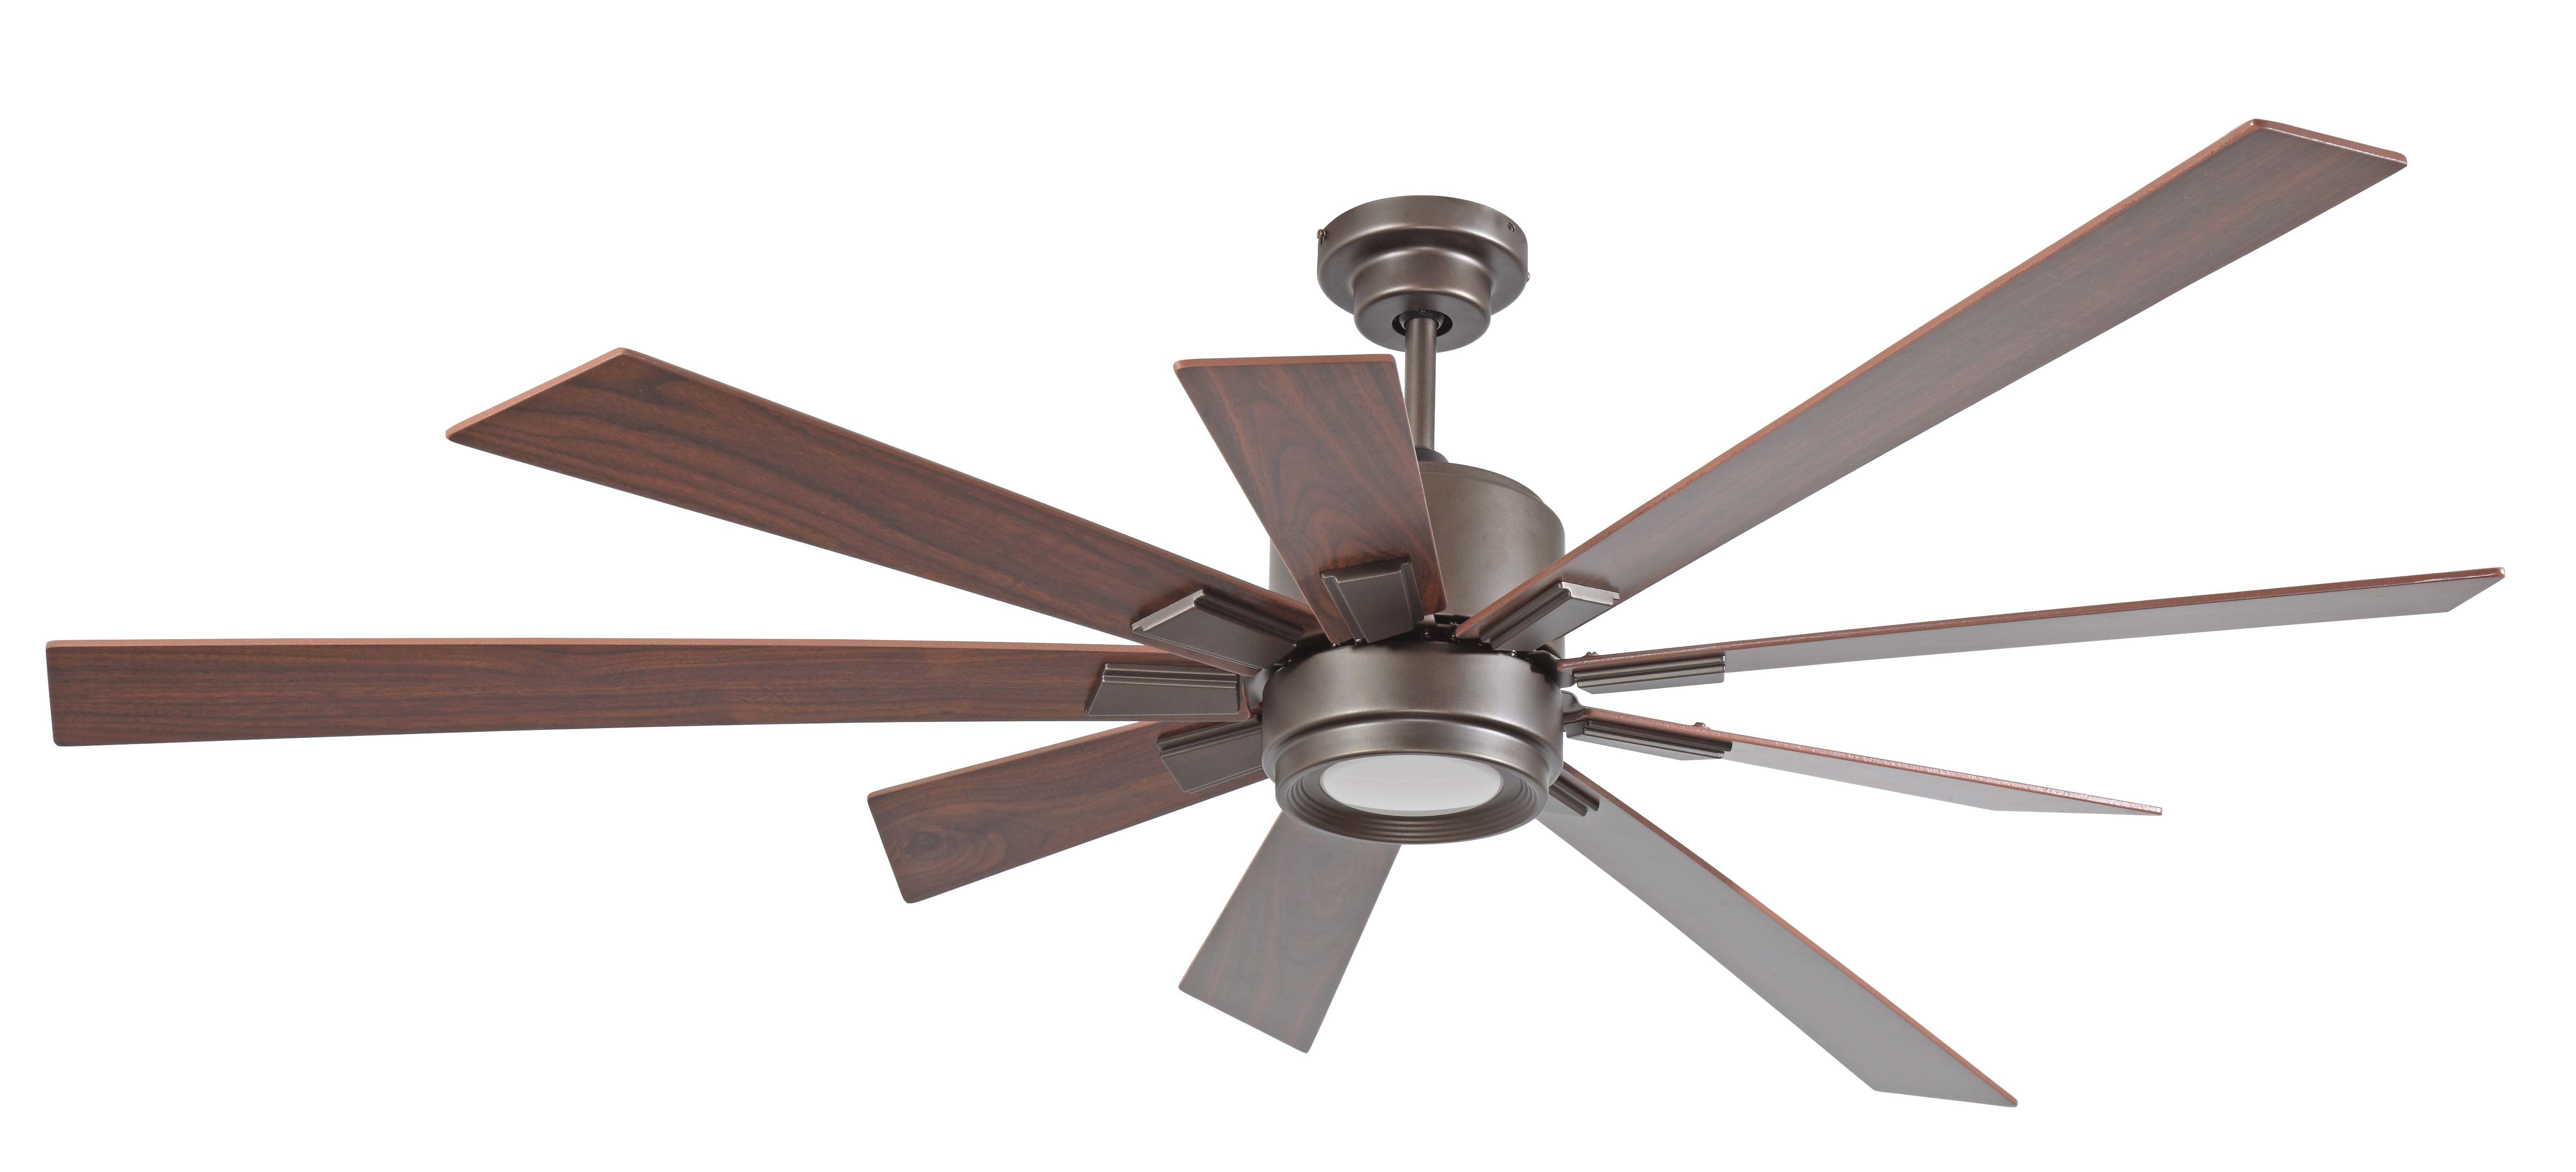 """72"""" Birney 9 Blade Ceiling Fan, Light Kit Included With Well Known Bankston 8 Blade Led Ceiling Fans (View 3 of 20)"""